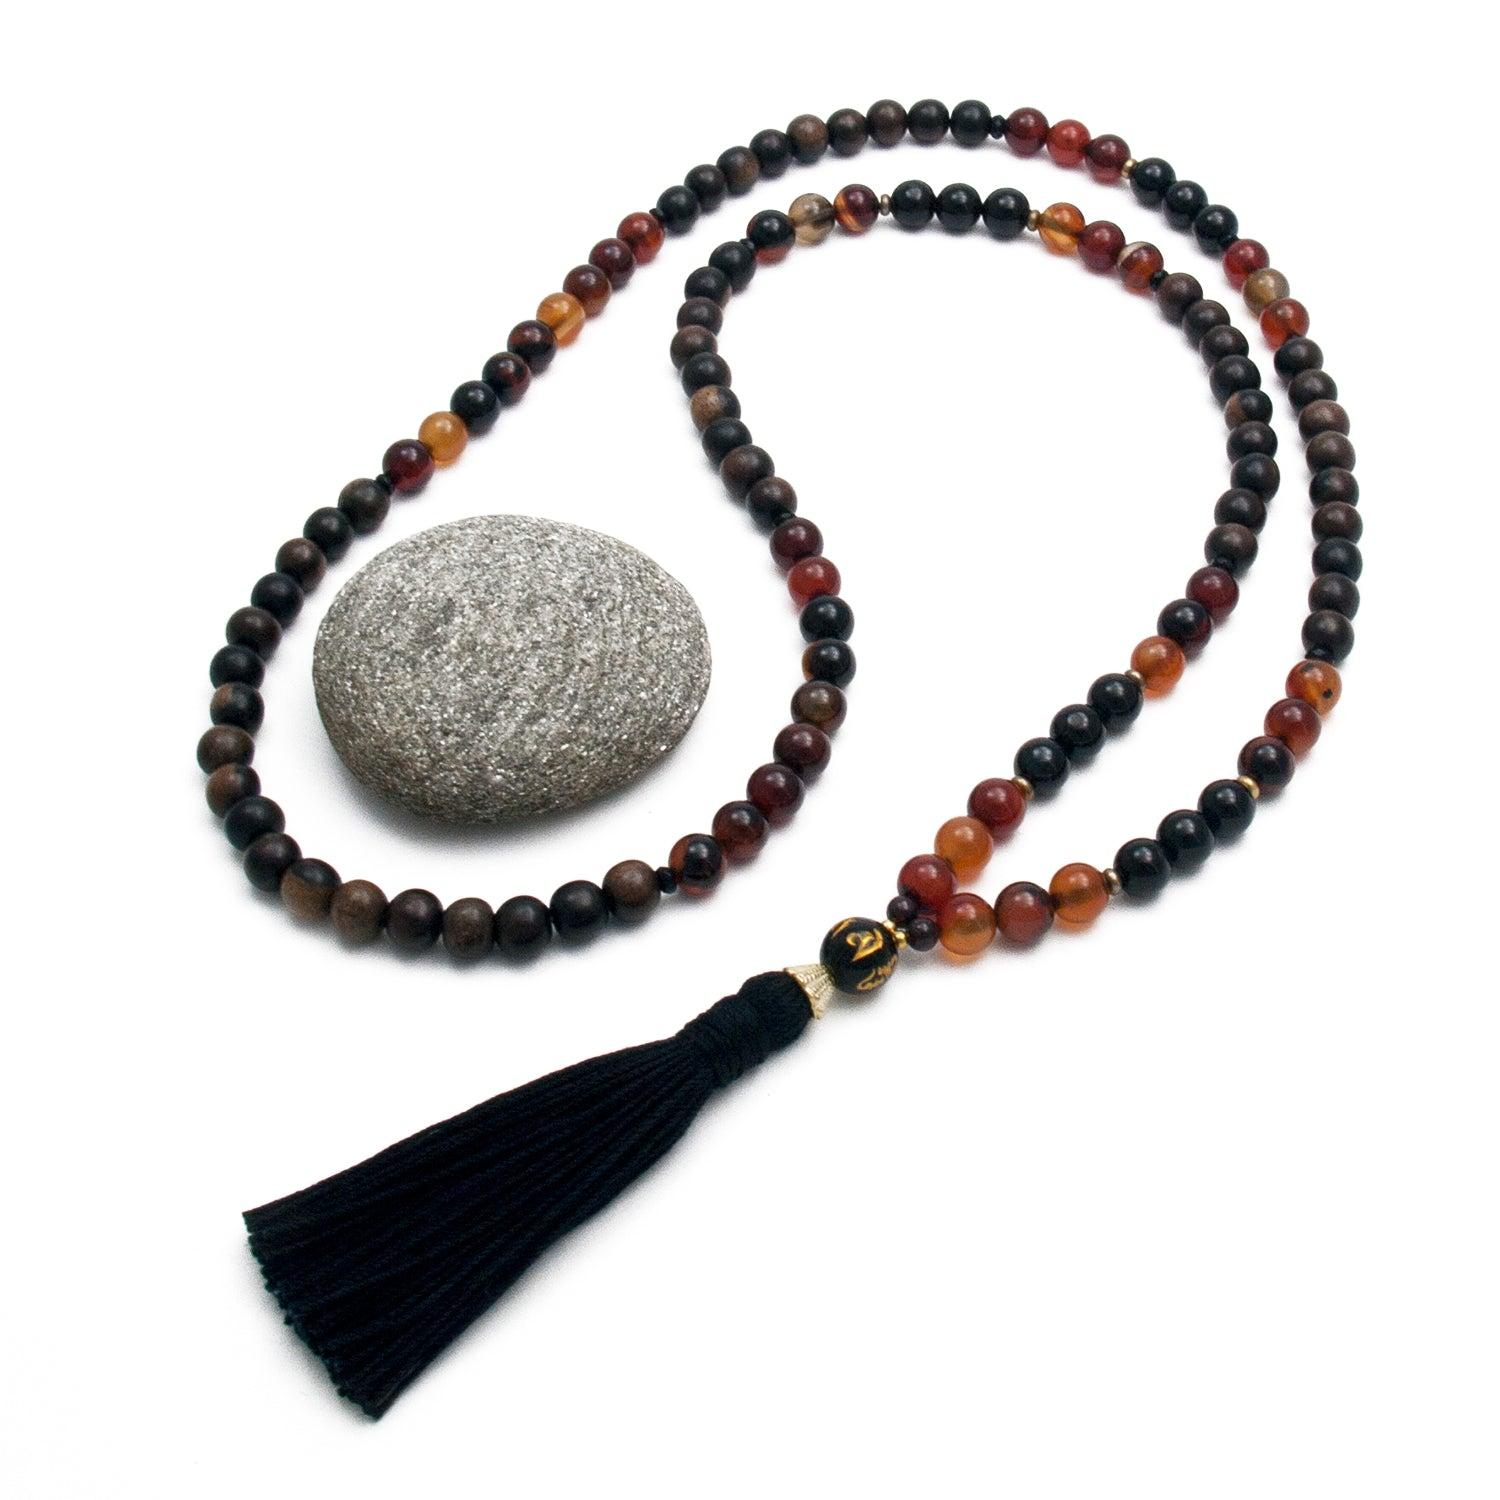 Mantra Mala Prayer Beads